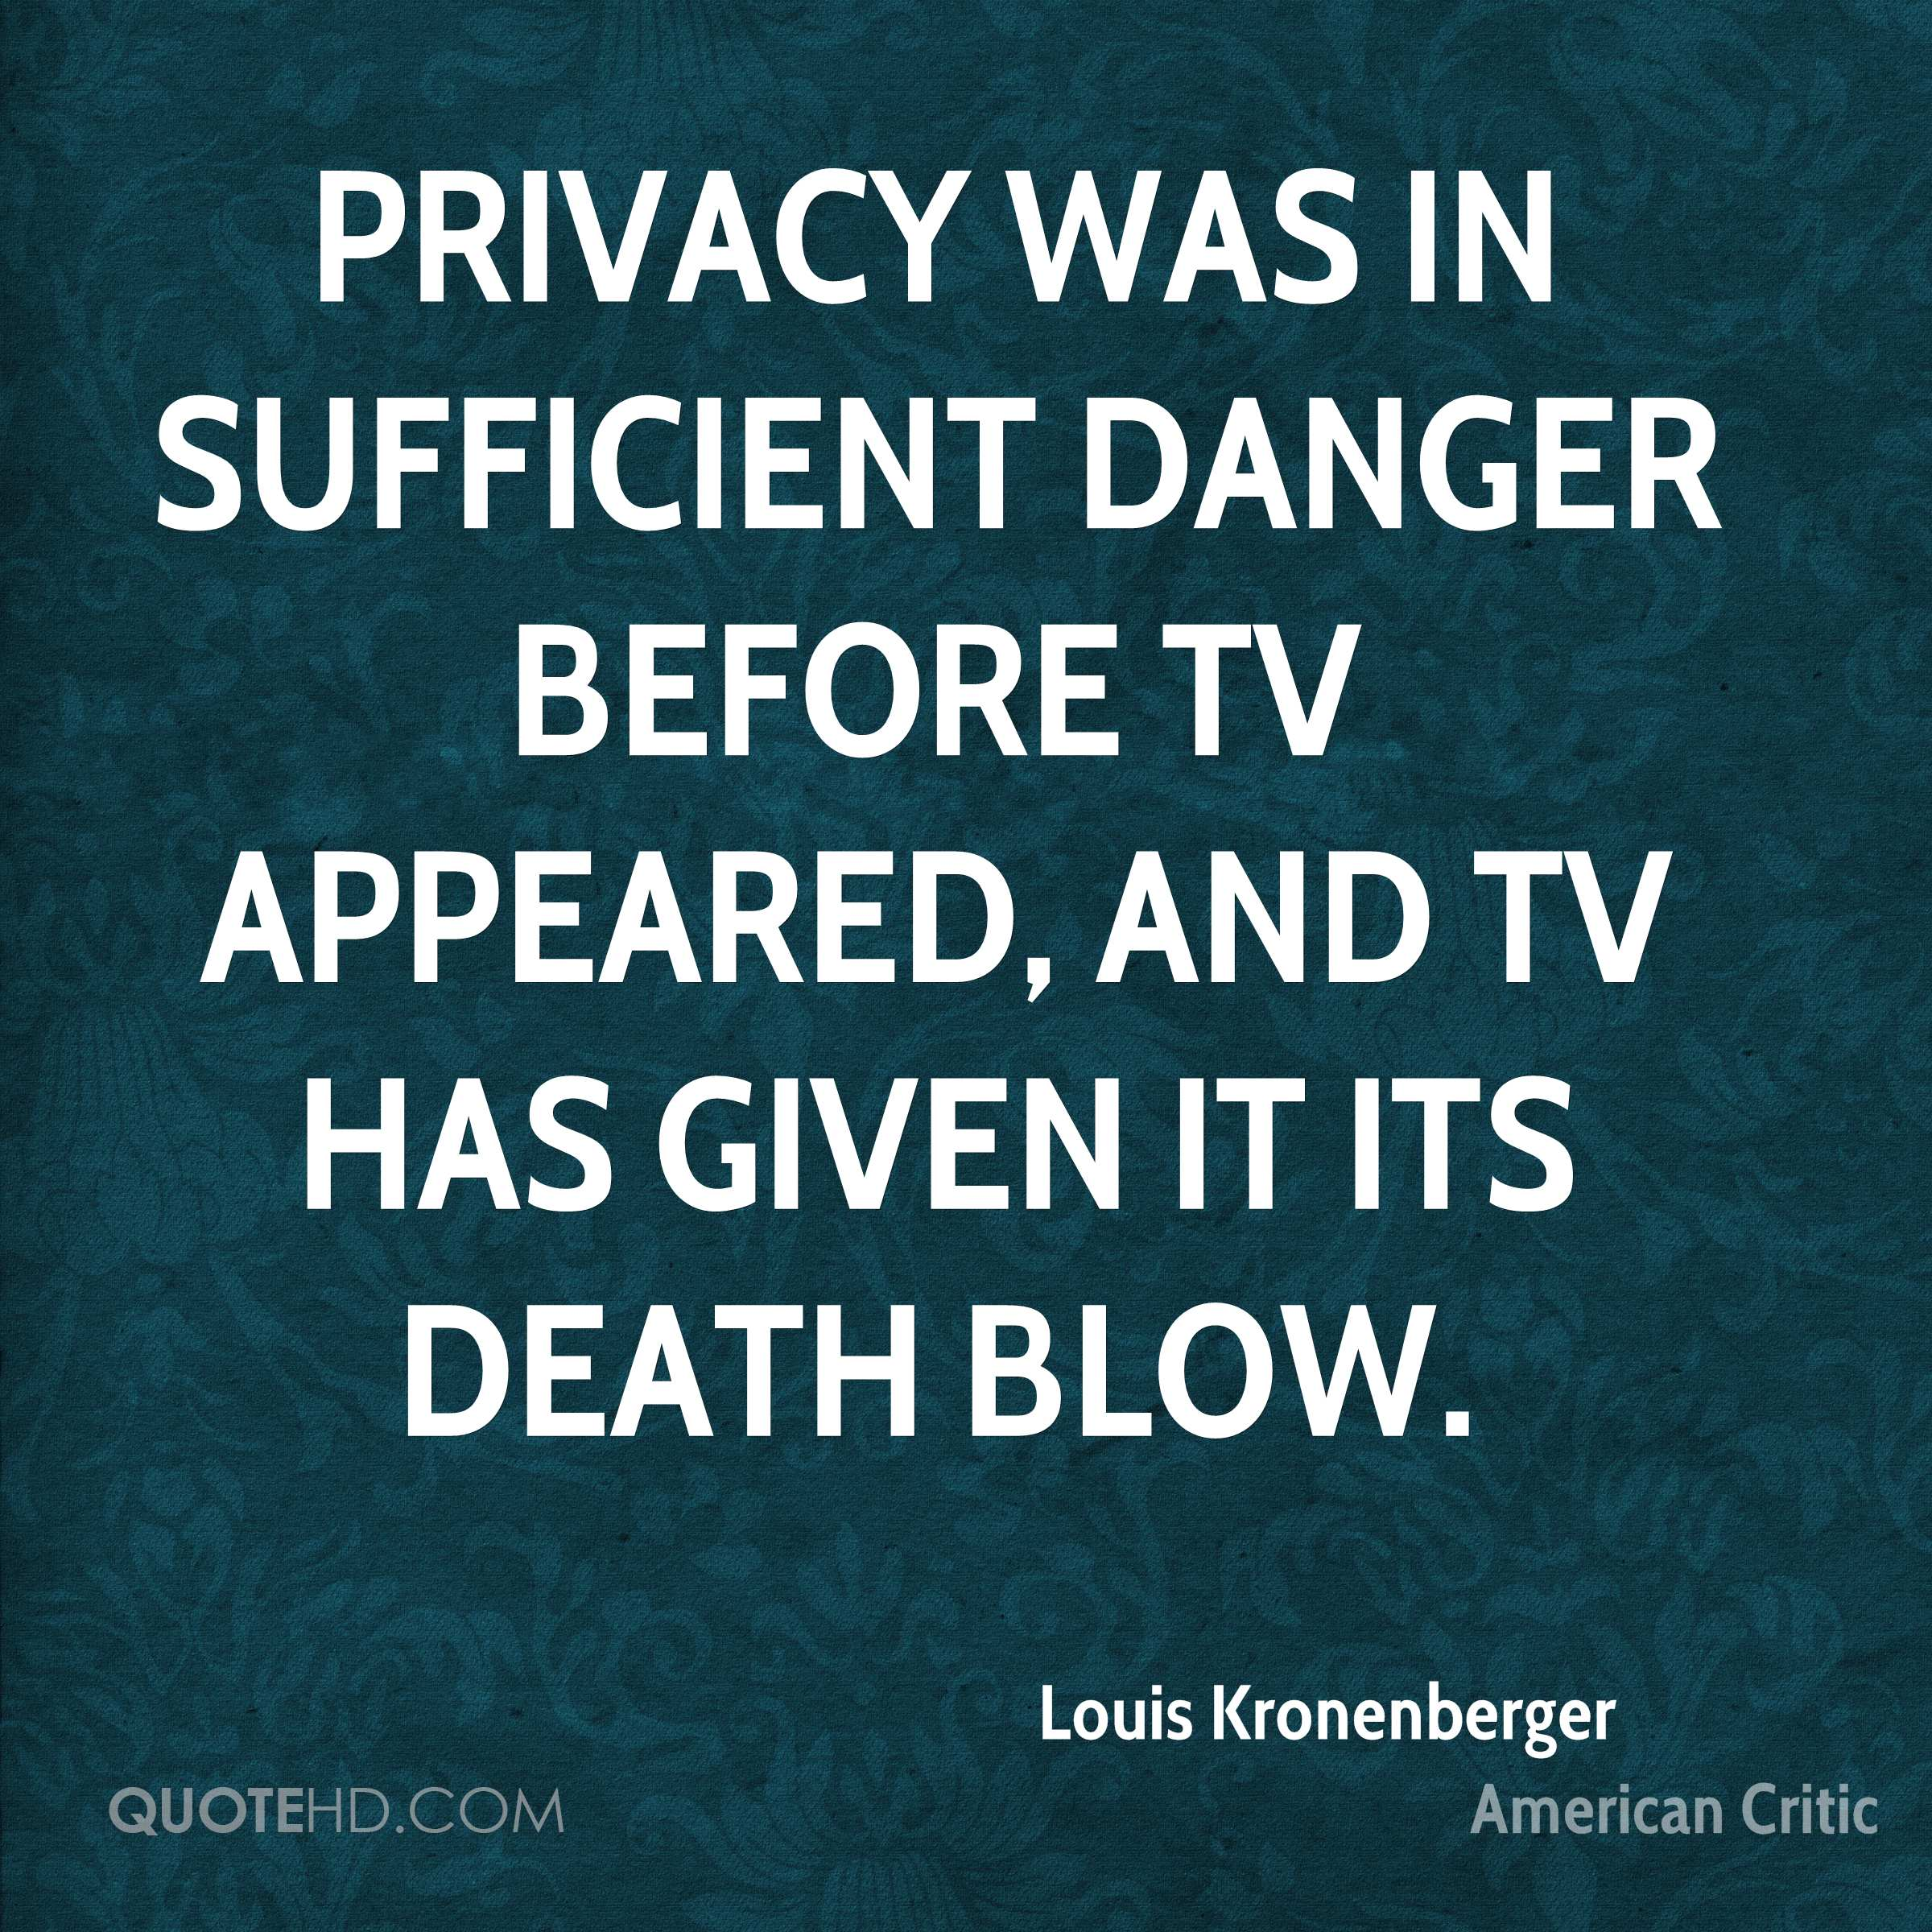 Privacy was in sufficient danger before TV appeared, and TV has given it its death blow.